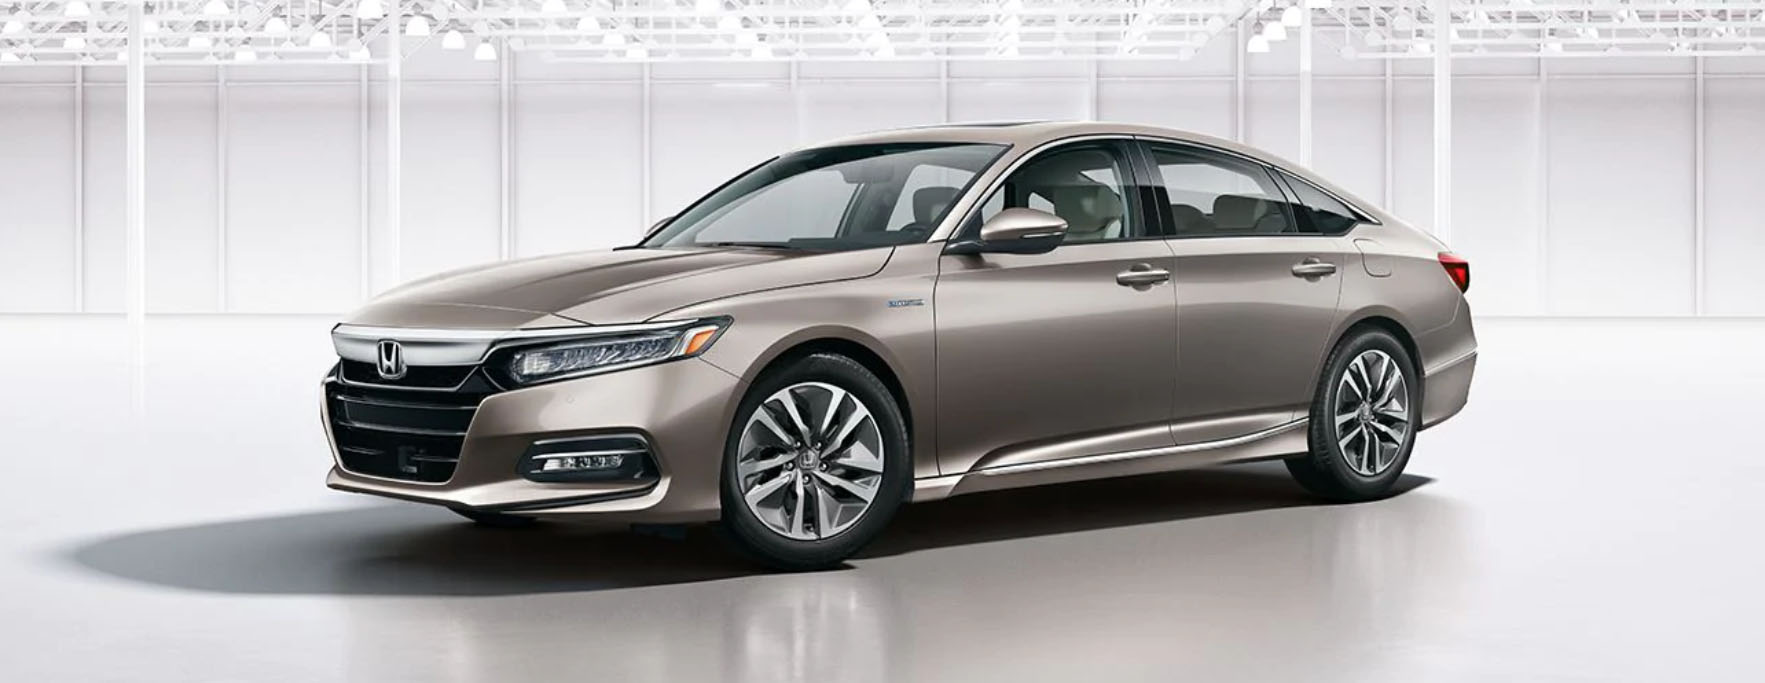 2020 Honda Accord Hybrid For Sale in Huntington